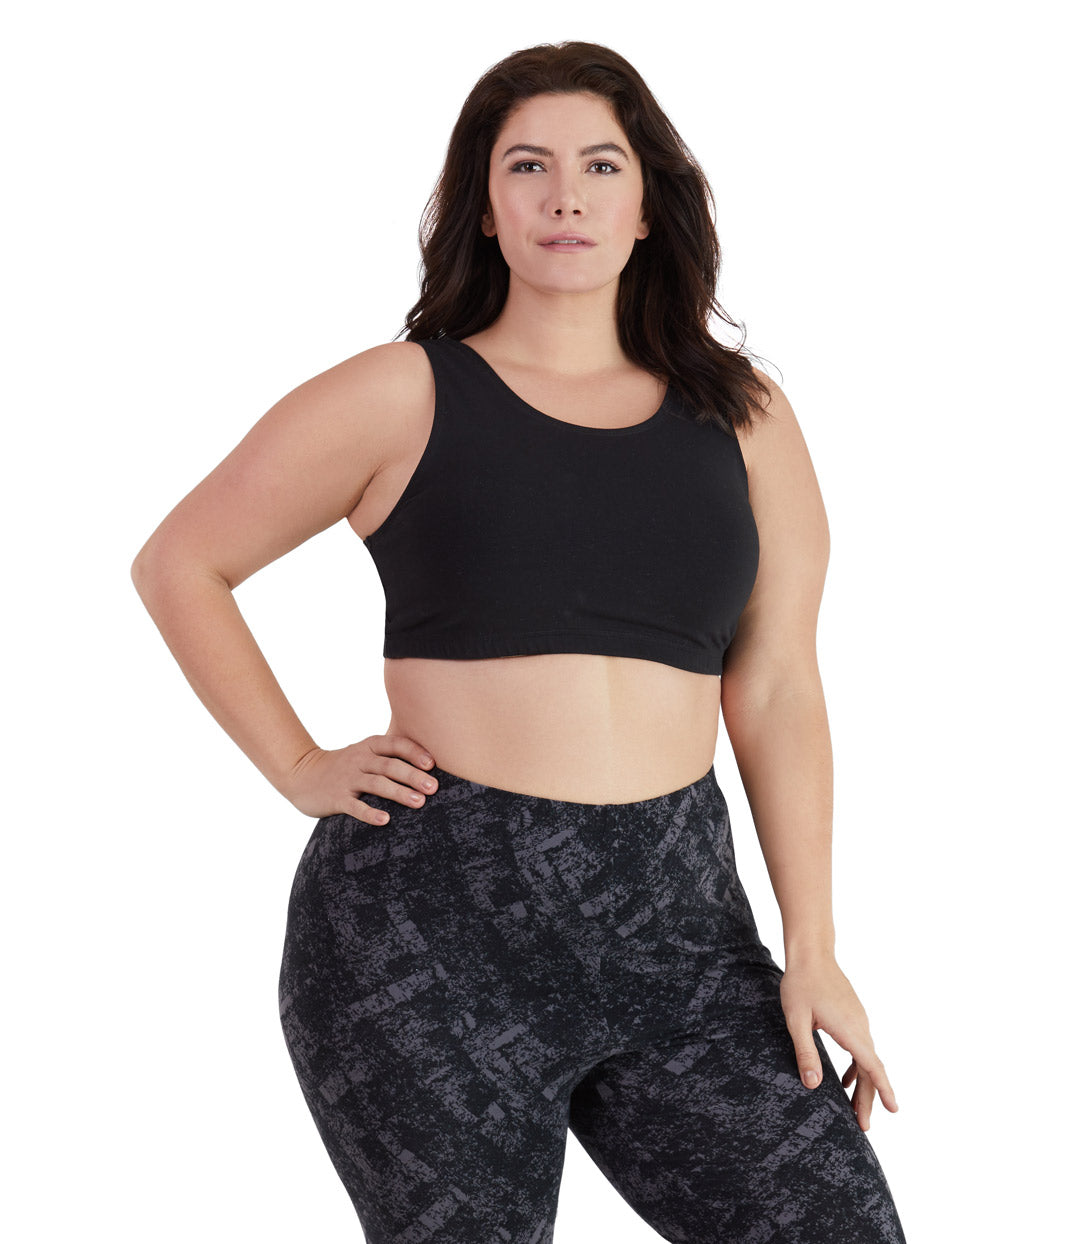 Plus Size Sports Bra Black